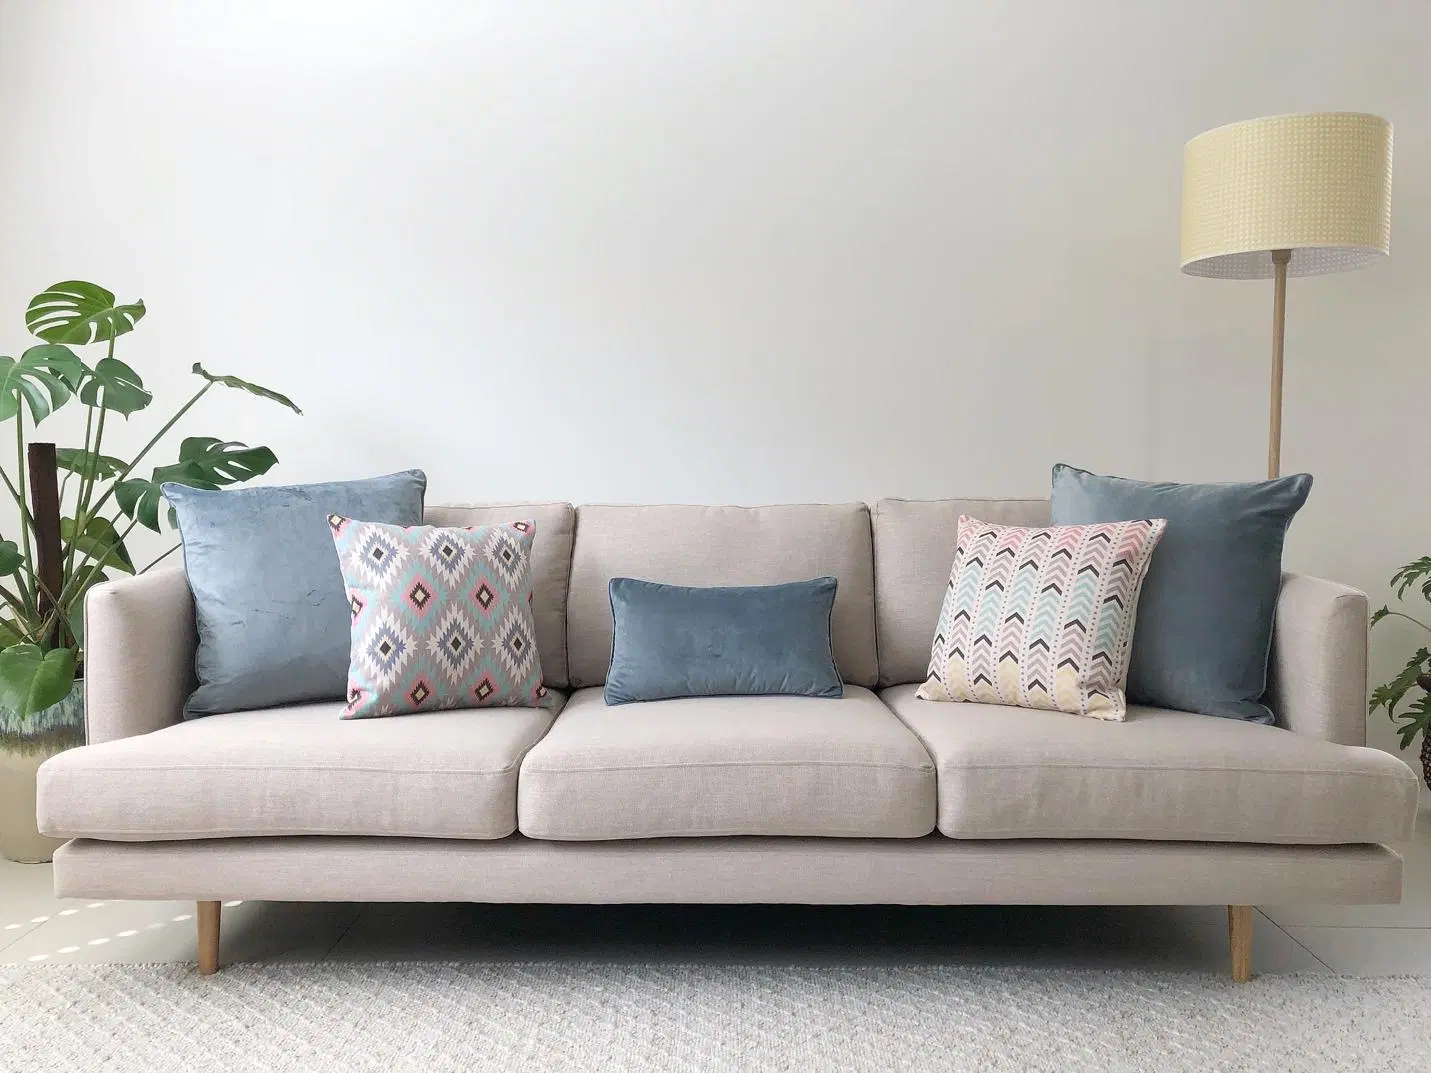 A beige sofa with five decorative cushions in various shades and patterns